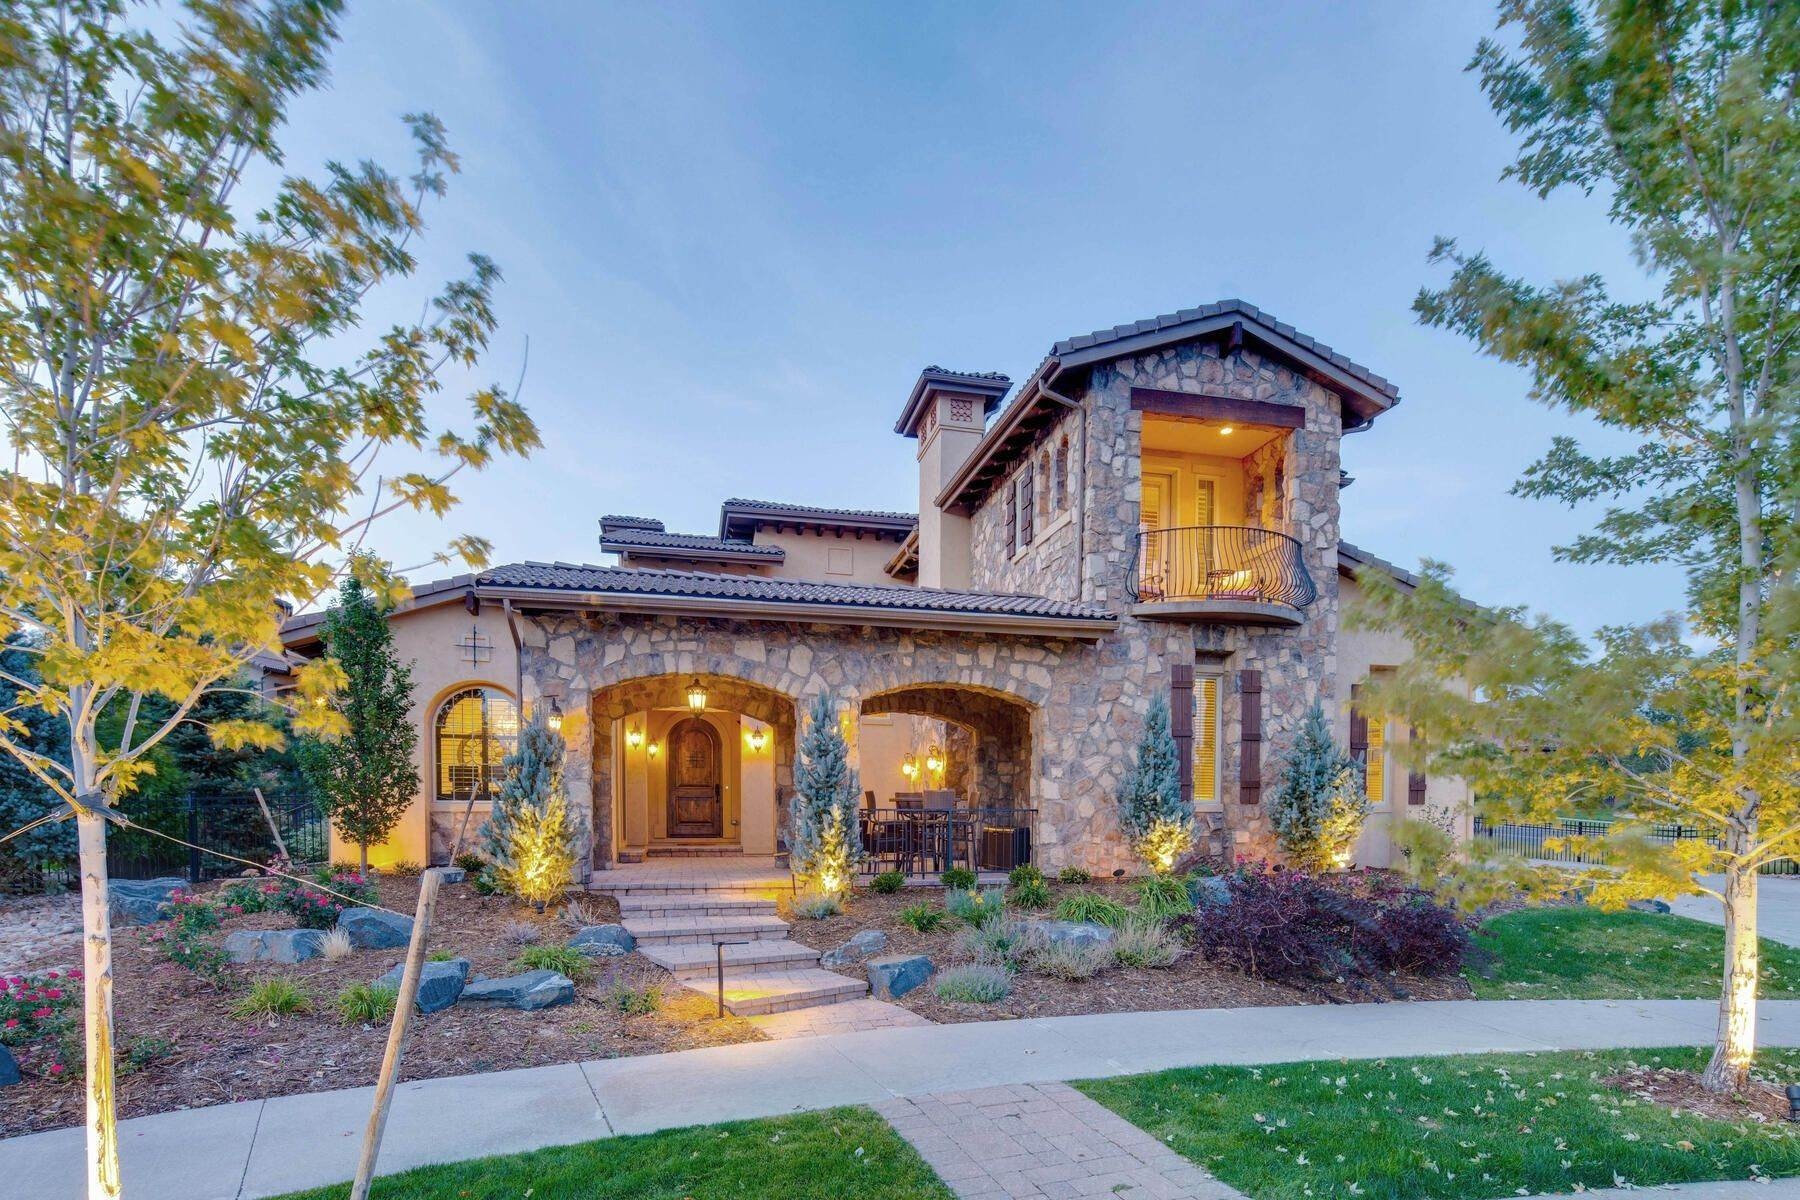 Single Family Homes for Active at This Stunning Custom Estate is Inspired by the Beauty of an Italian Villa! 15227 W Warren Drive Lakewood, Colorado 80228 United States